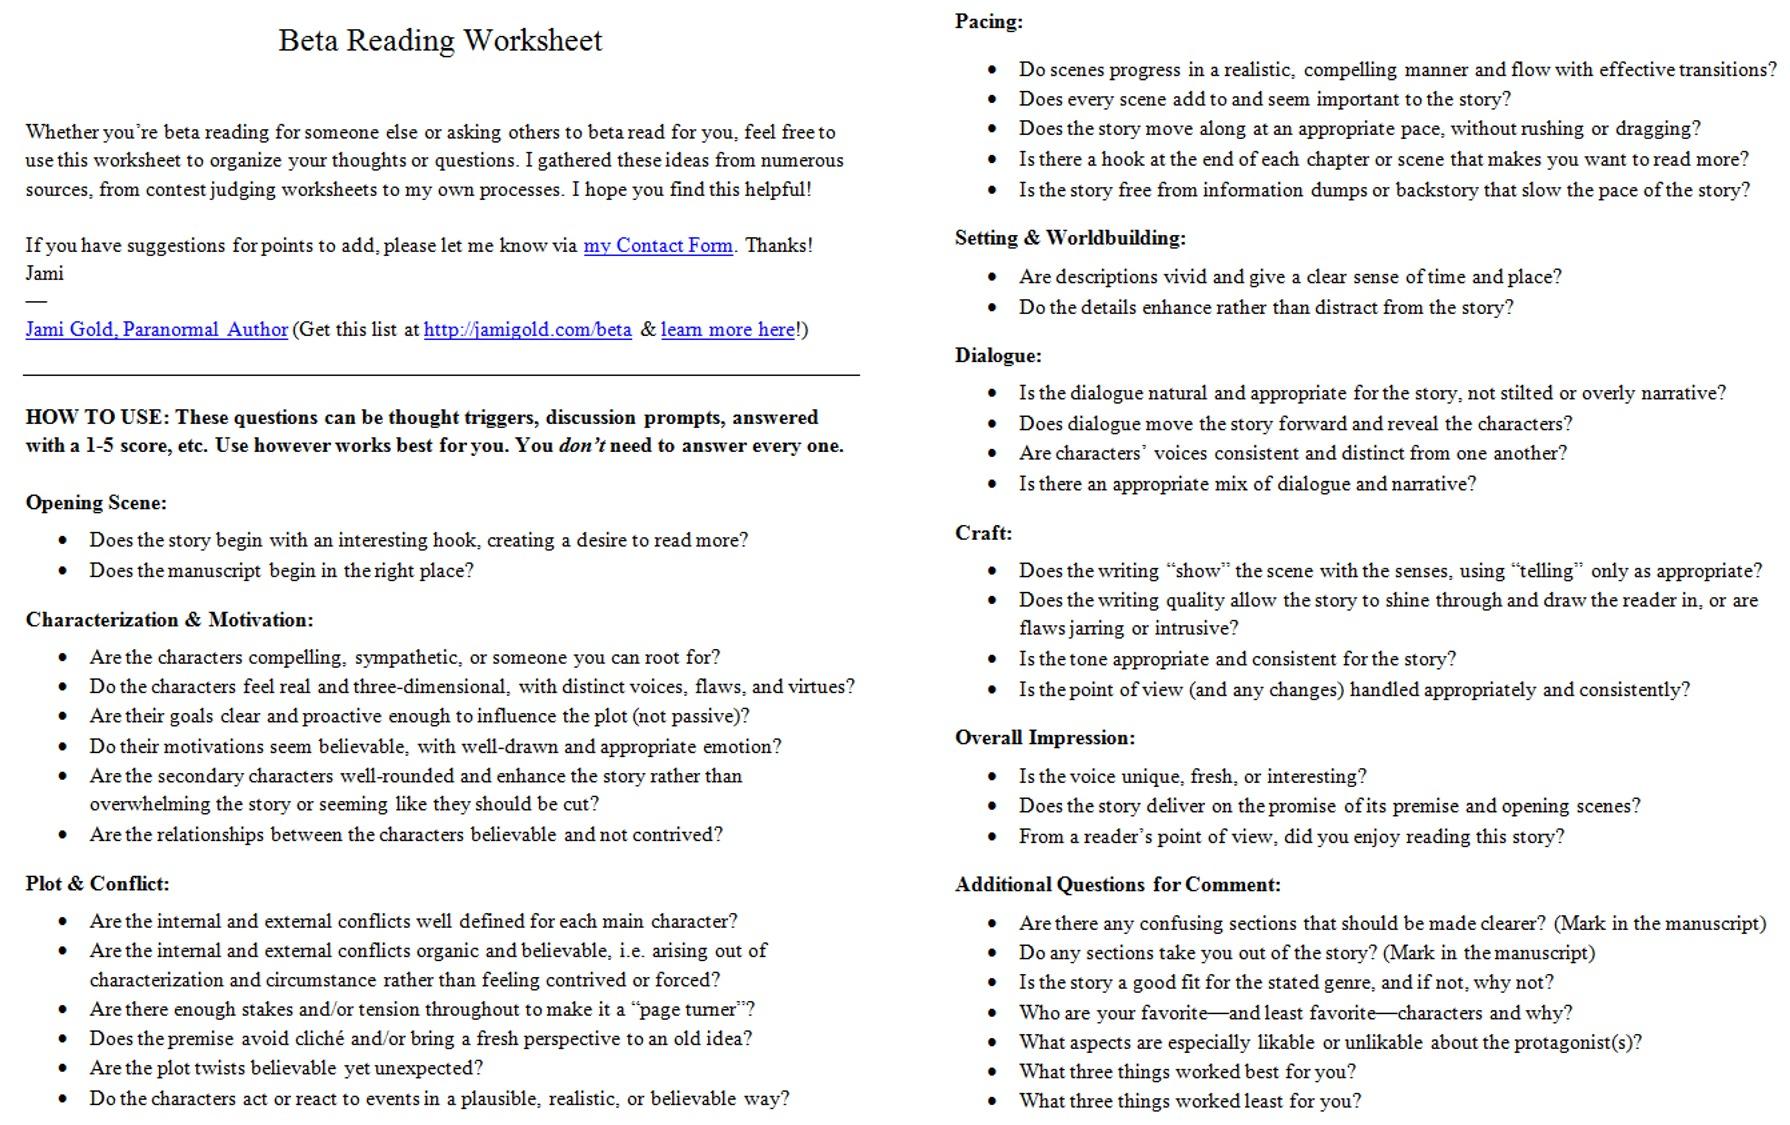 Aldiablosus  Stunning Worksheets For Writers  Jami Gold Paranormal Author With Lovely Screen Shot Of The Twopage Beta Reading Worksheet With Easy On The Eye Adding And Subtracting Three Digit Numbers Worksheet Also Free Worksheets On Contractions In Addition Money And Change Worksheets And Pirate Worksheets Ks As Well As Subtraction Across Zero Worksheets Additionally Fractional Powers Worksheet From Jamigoldcom With Aldiablosus  Lovely Worksheets For Writers  Jami Gold Paranormal Author With Easy On The Eye Screen Shot Of The Twopage Beta Reading Worksheet And Stunning Adding And Subtracting Three Digit Numbers Worksheet Also Free Worksheets On Contractions In Addition Money And Change Worksheets From Jamigoldcom